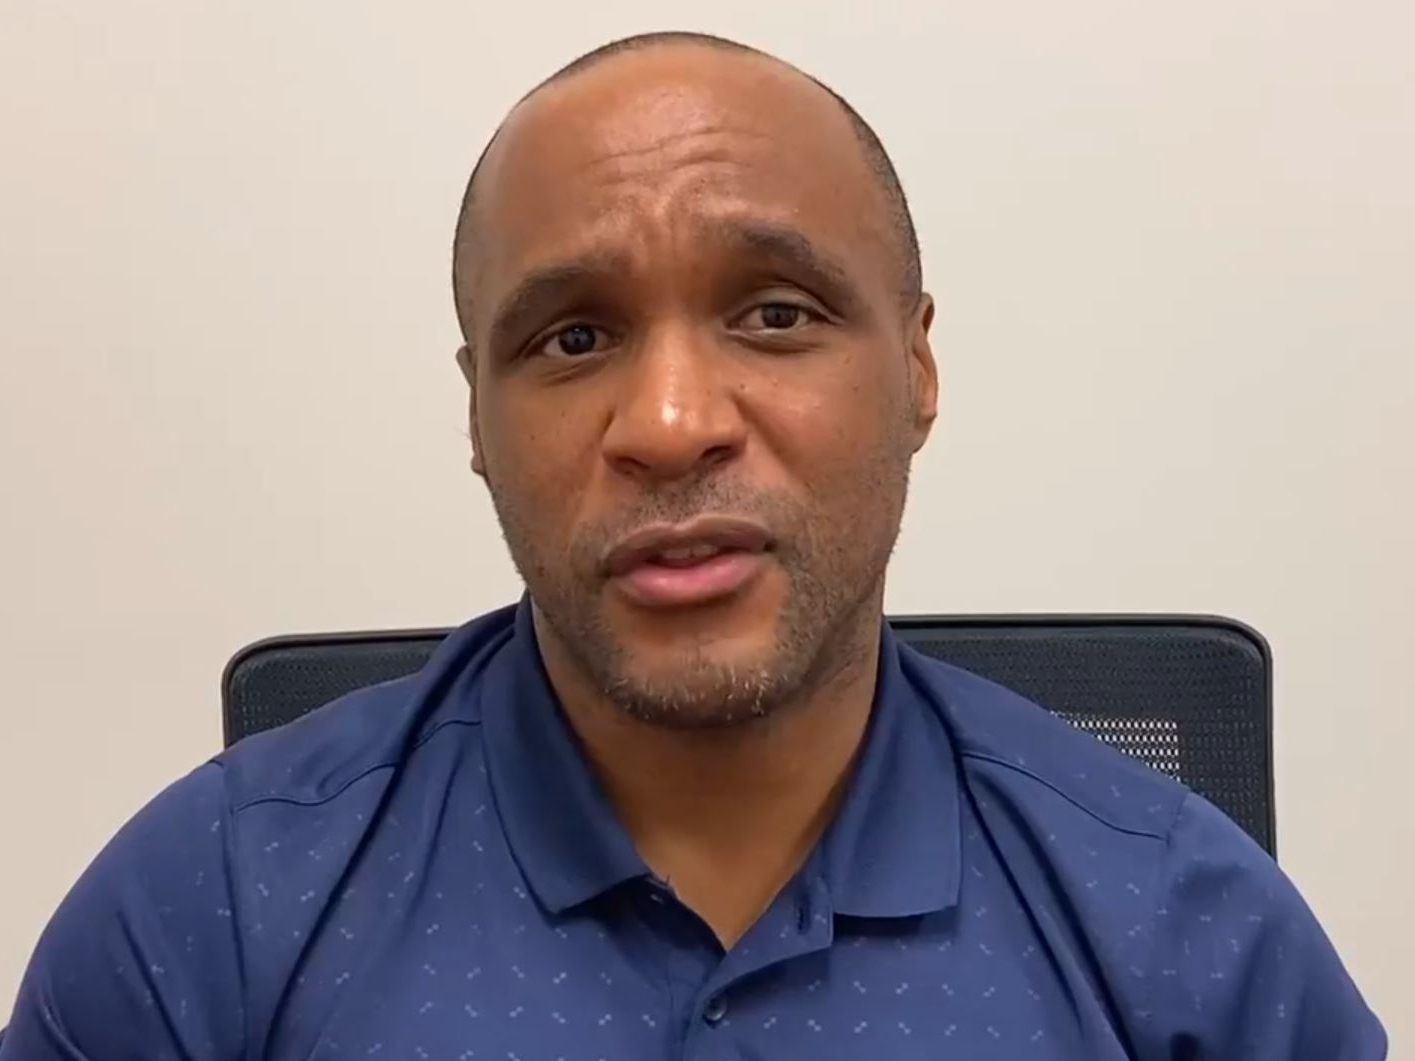 Dr. Travis Gayles Urges Young People to Stay Home | Montgomery ...